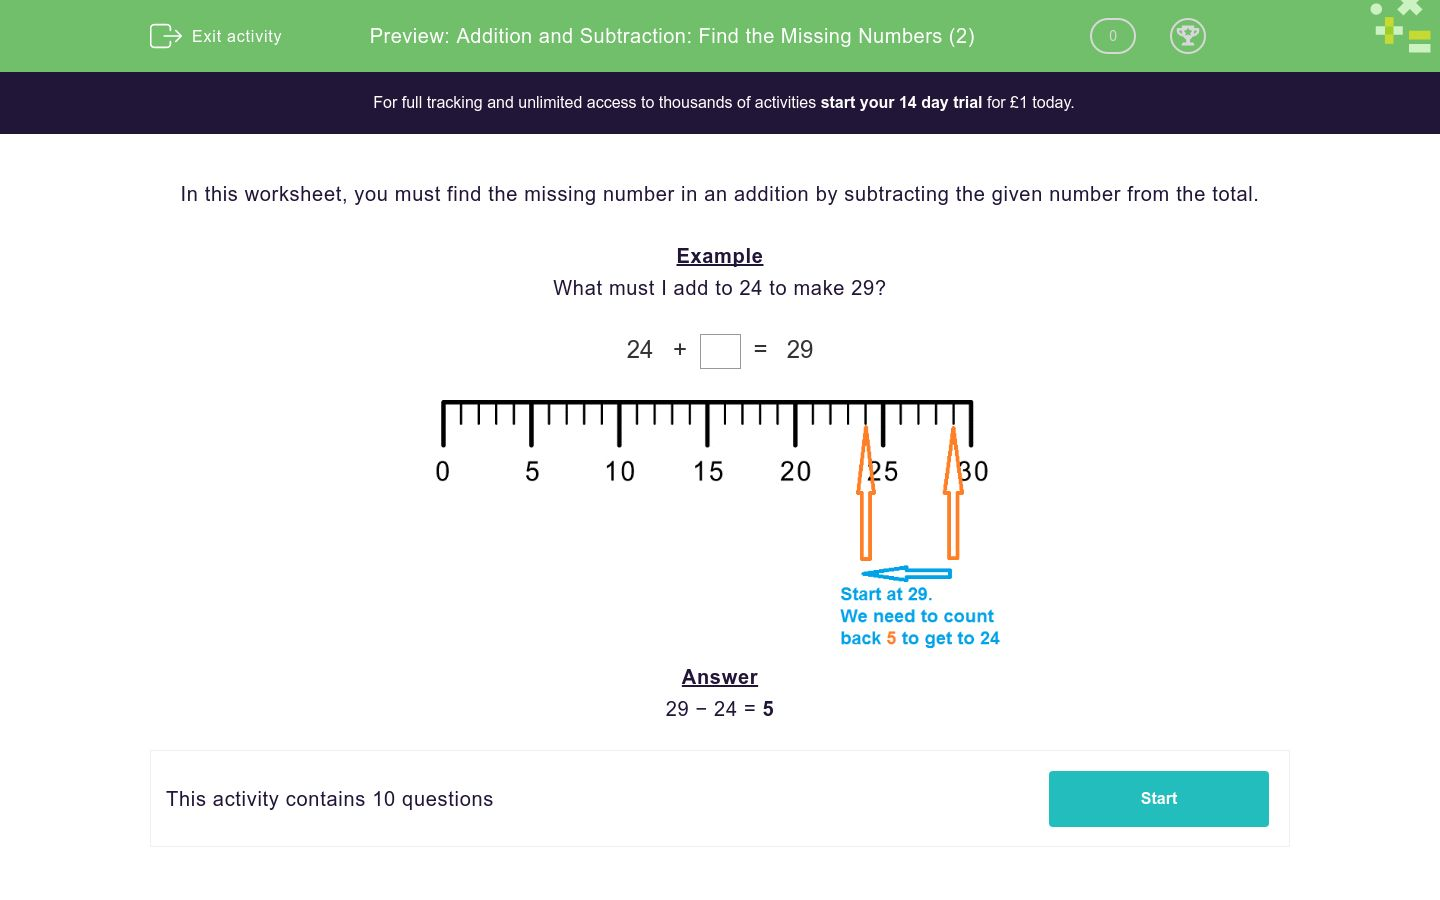 'Addition and Subtraction: Find the Missing Numbers (2)' worksheet